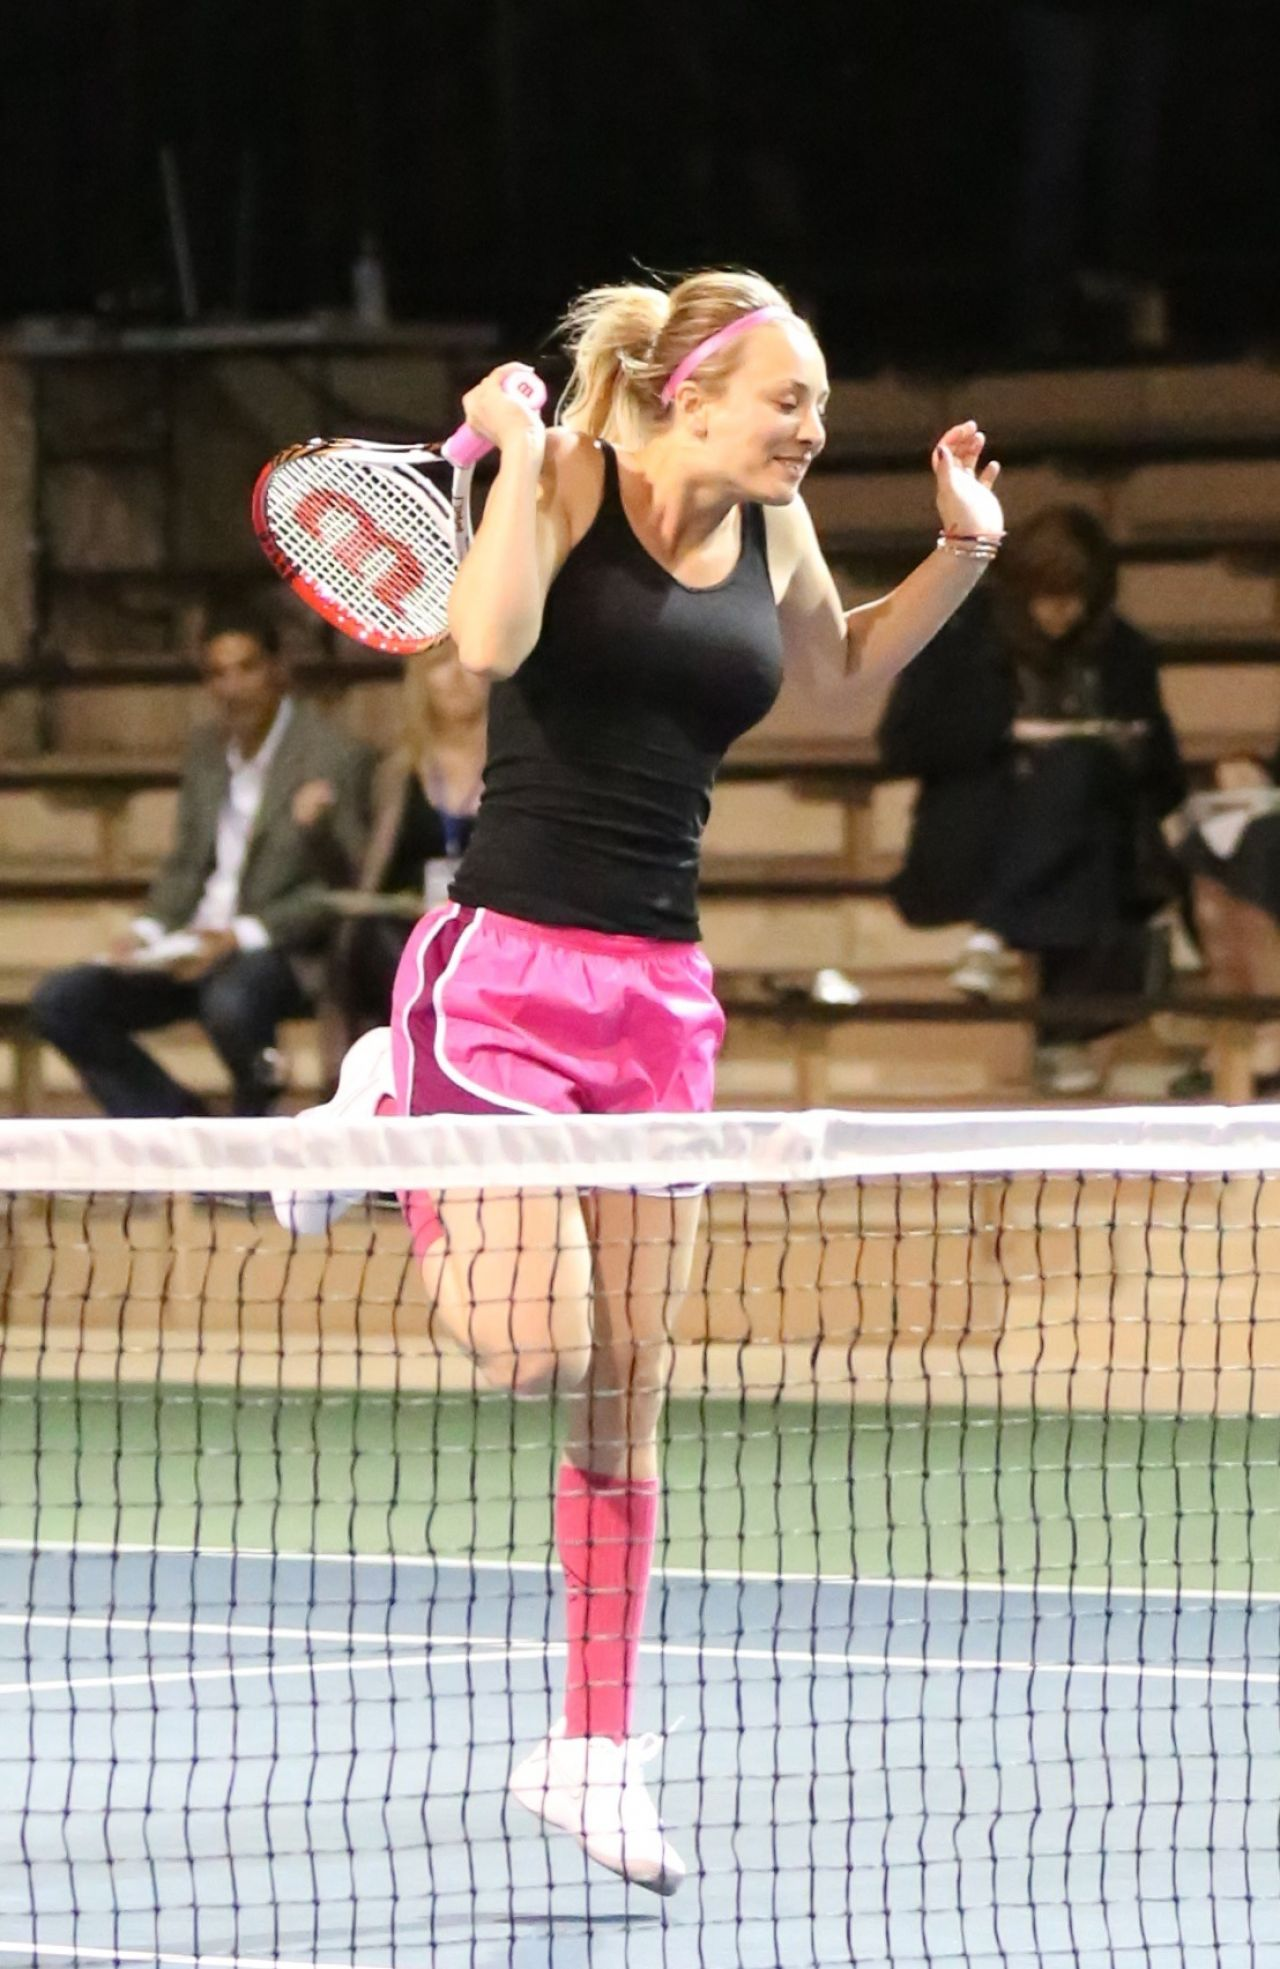 Kaley Cuoco Tennis Match For Charity In Calabasa March